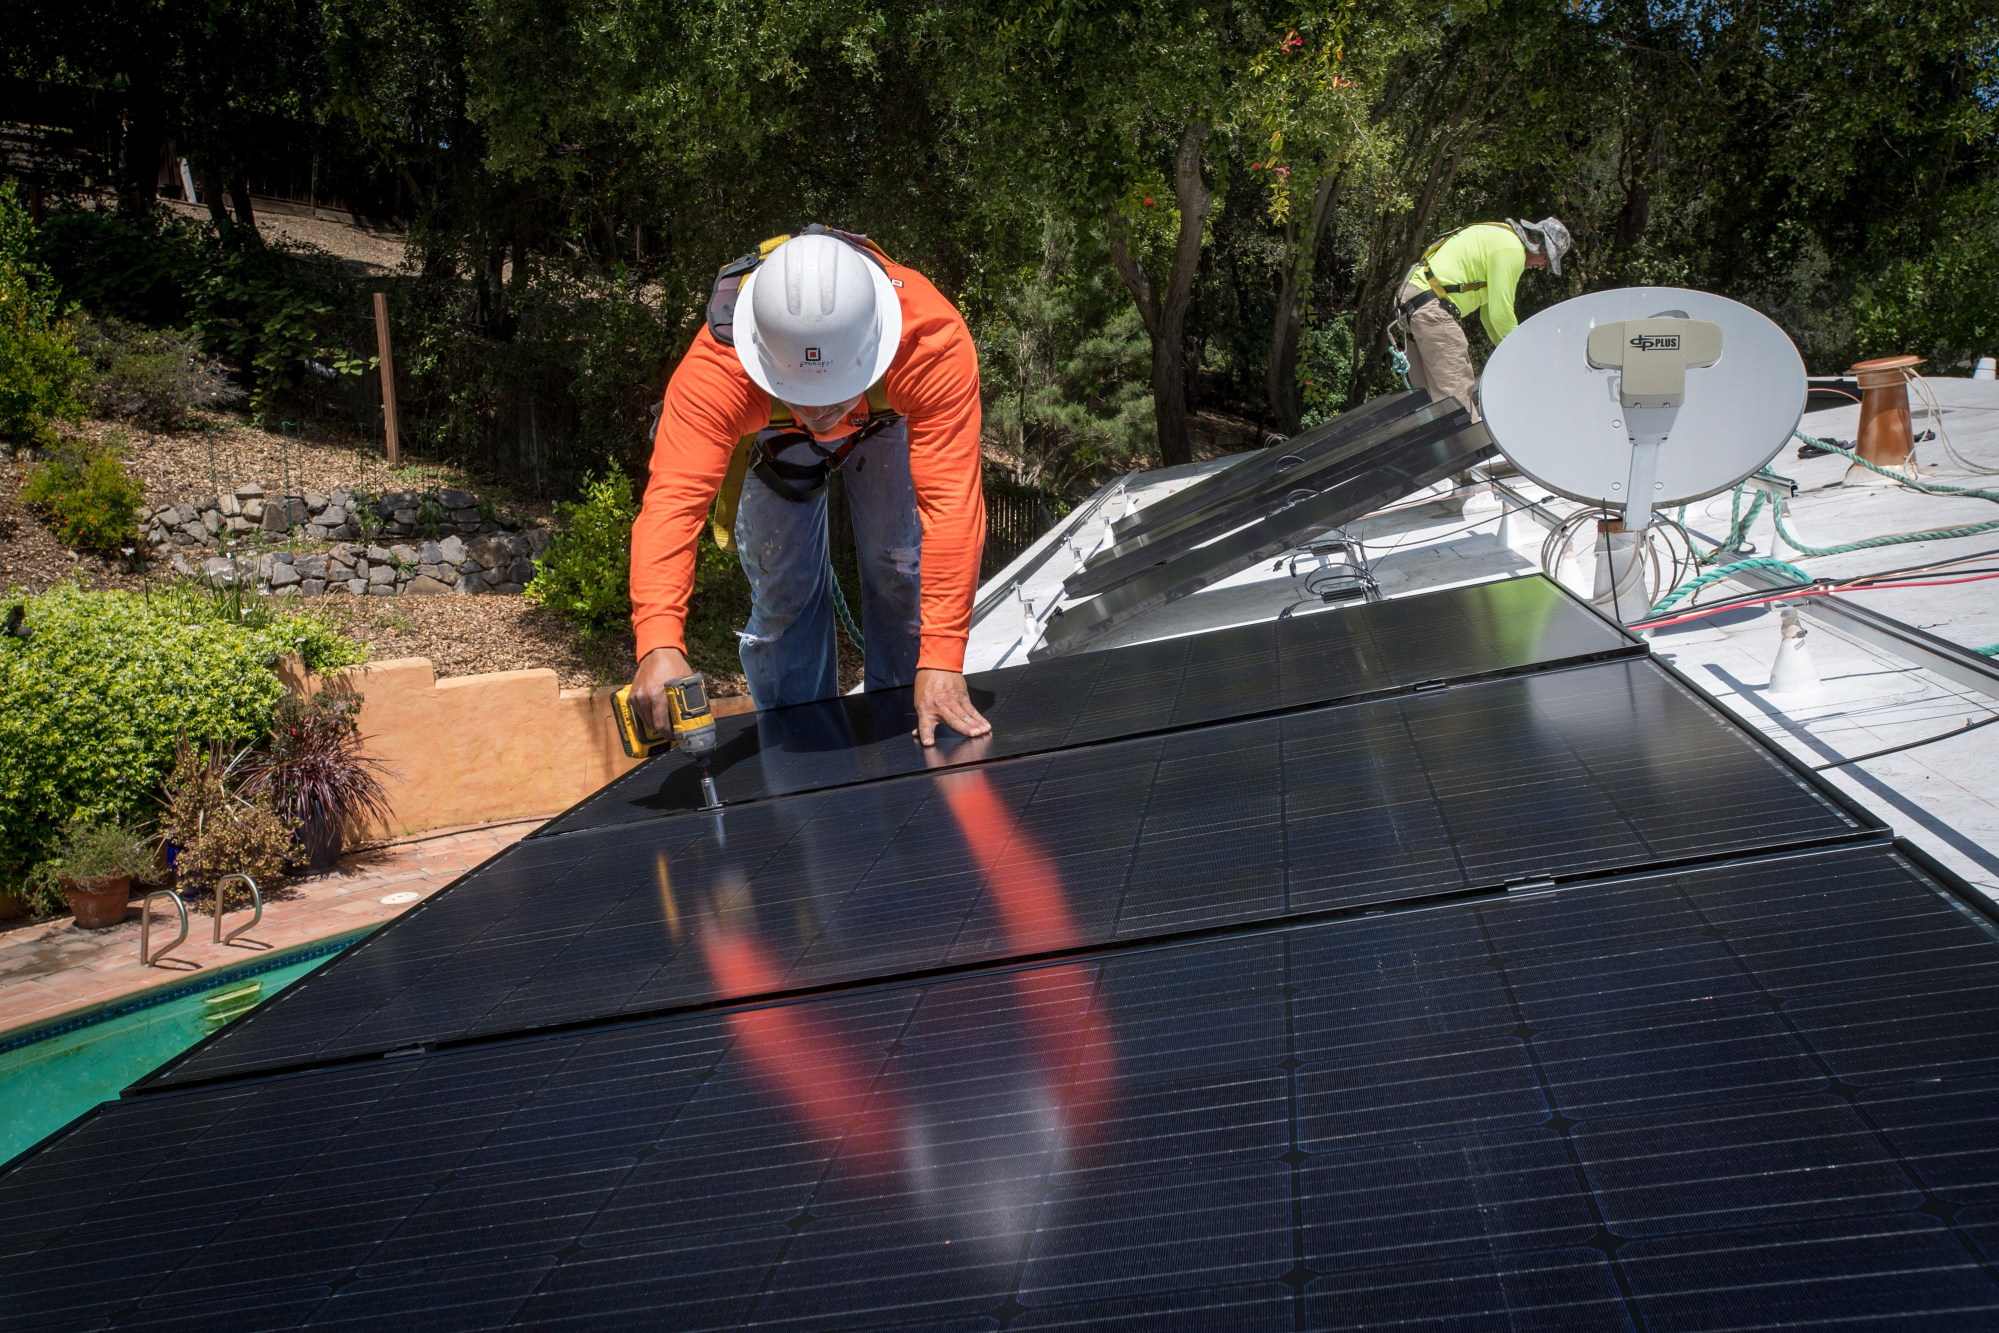 bloomberg.com - Brian Eckhouse - Loans Are Now the Most Popular Way of Getting Home Solar Panels